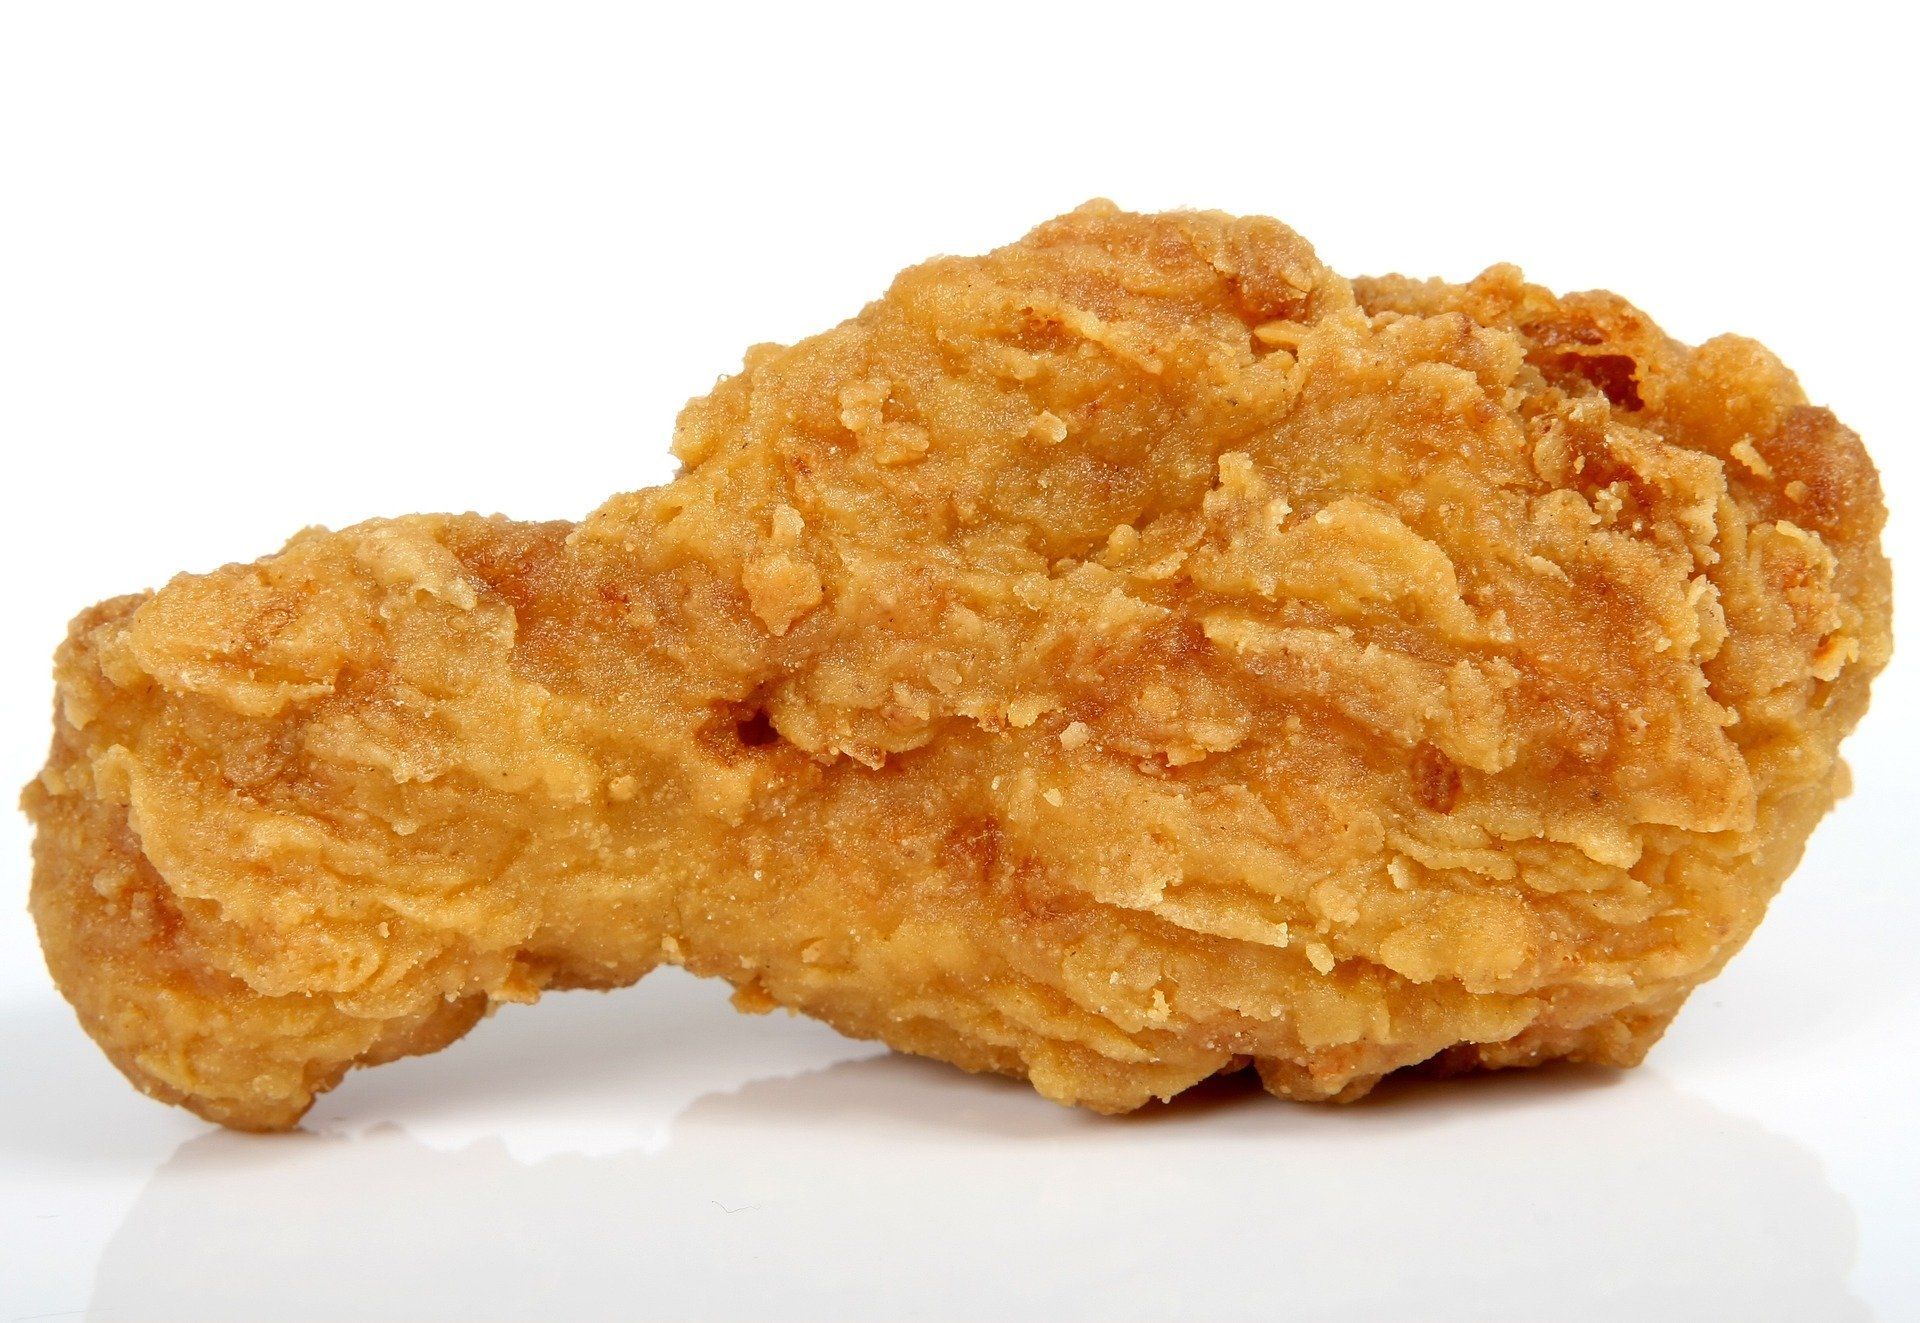 Fried chicken wing bad for brain health